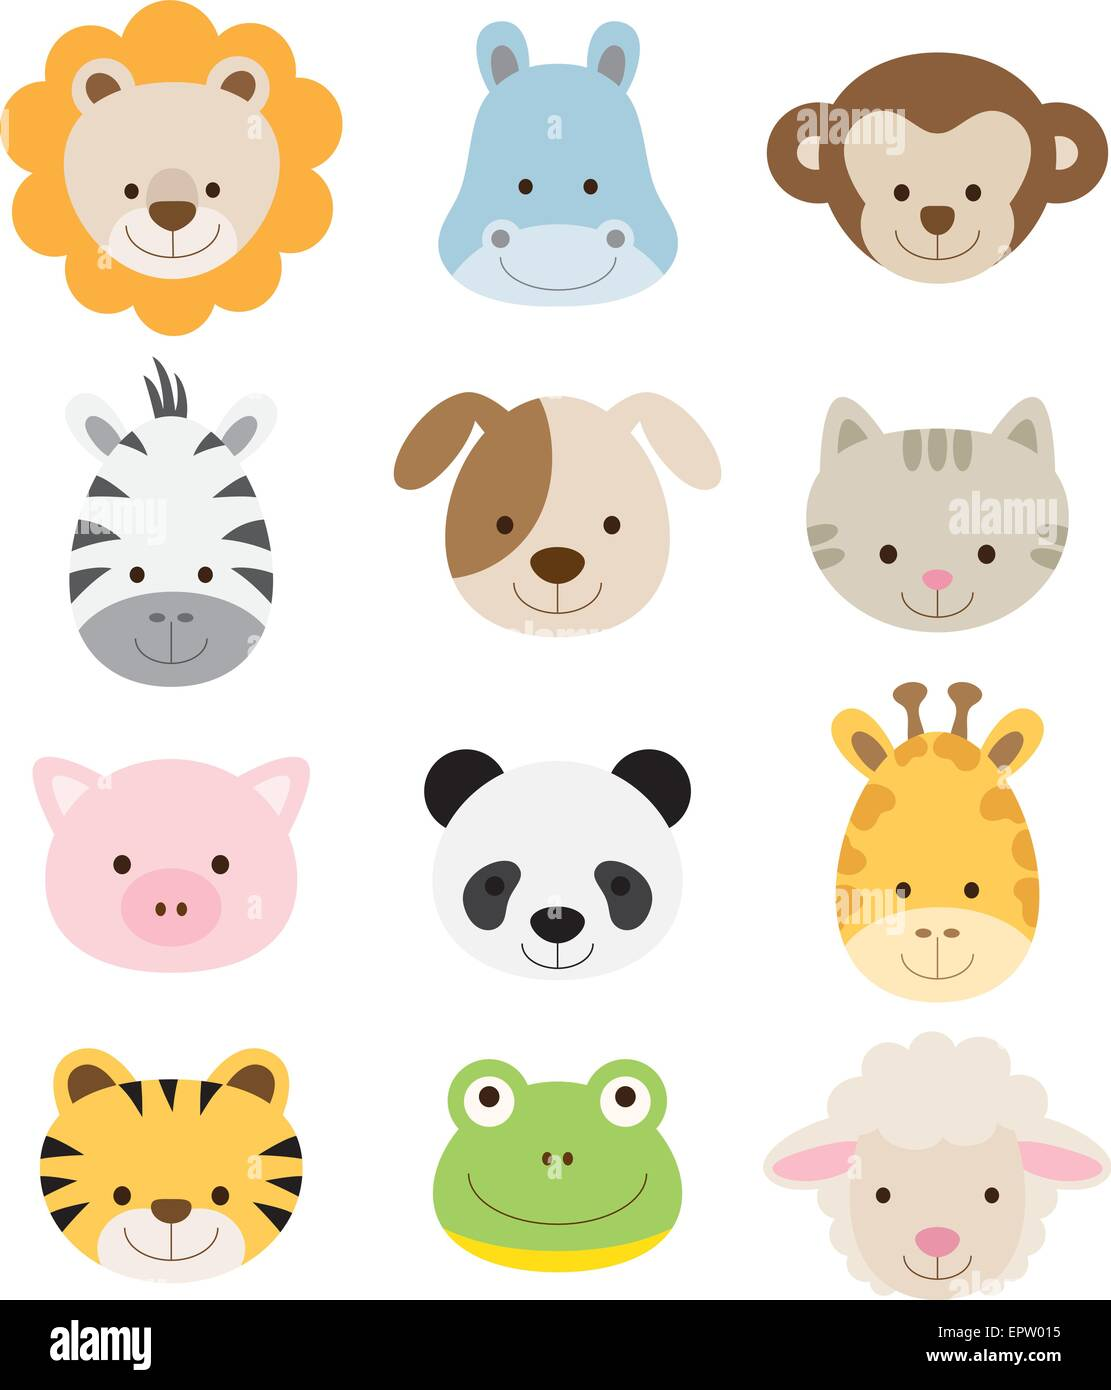 Vector illustration of animal faces including lion, hippo